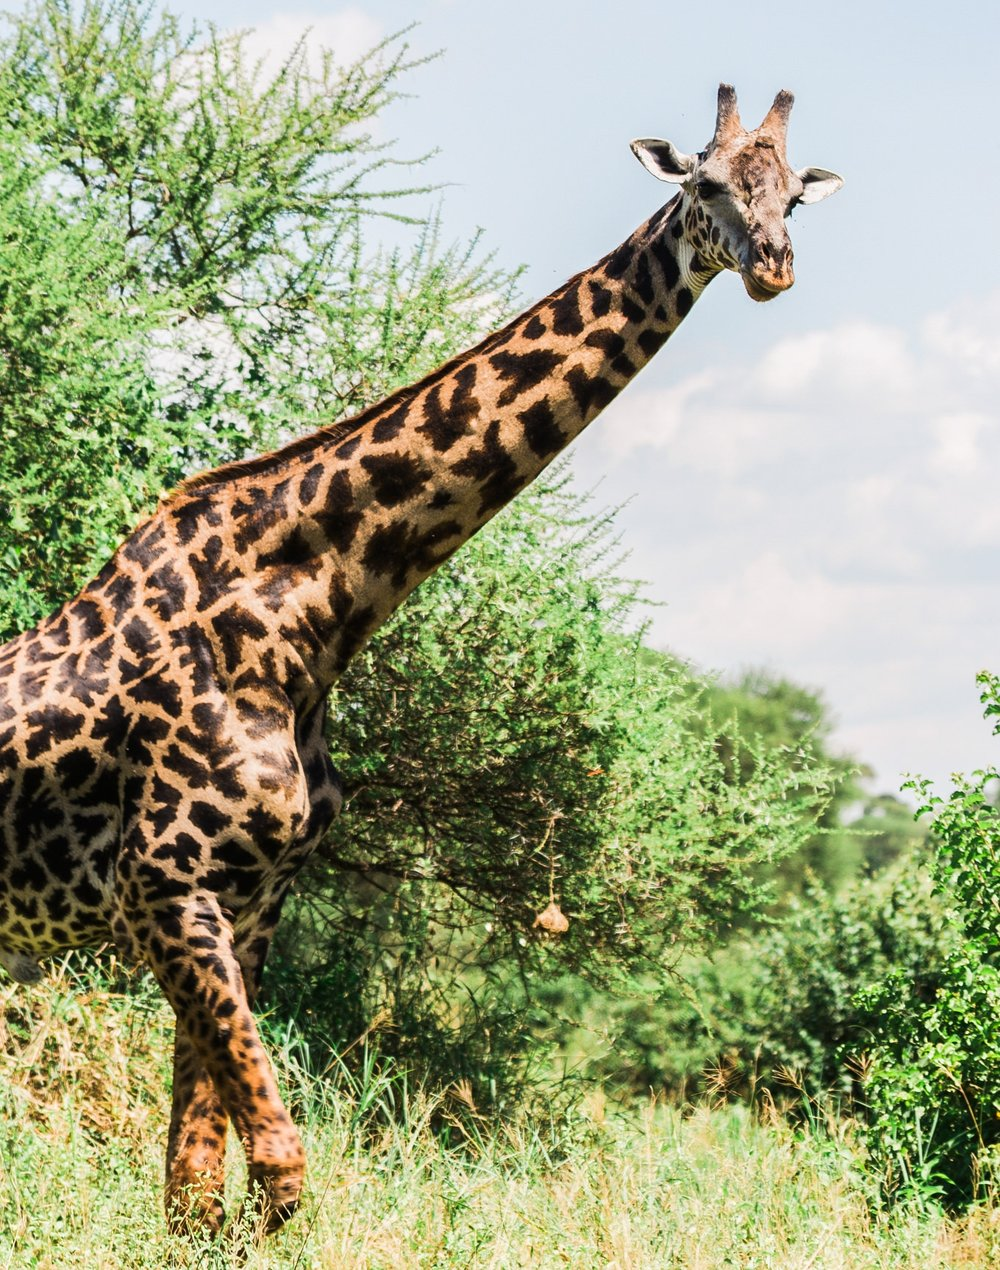 Old male giraffe in Maasai Mara, Kenya Ph. Valorie Darling